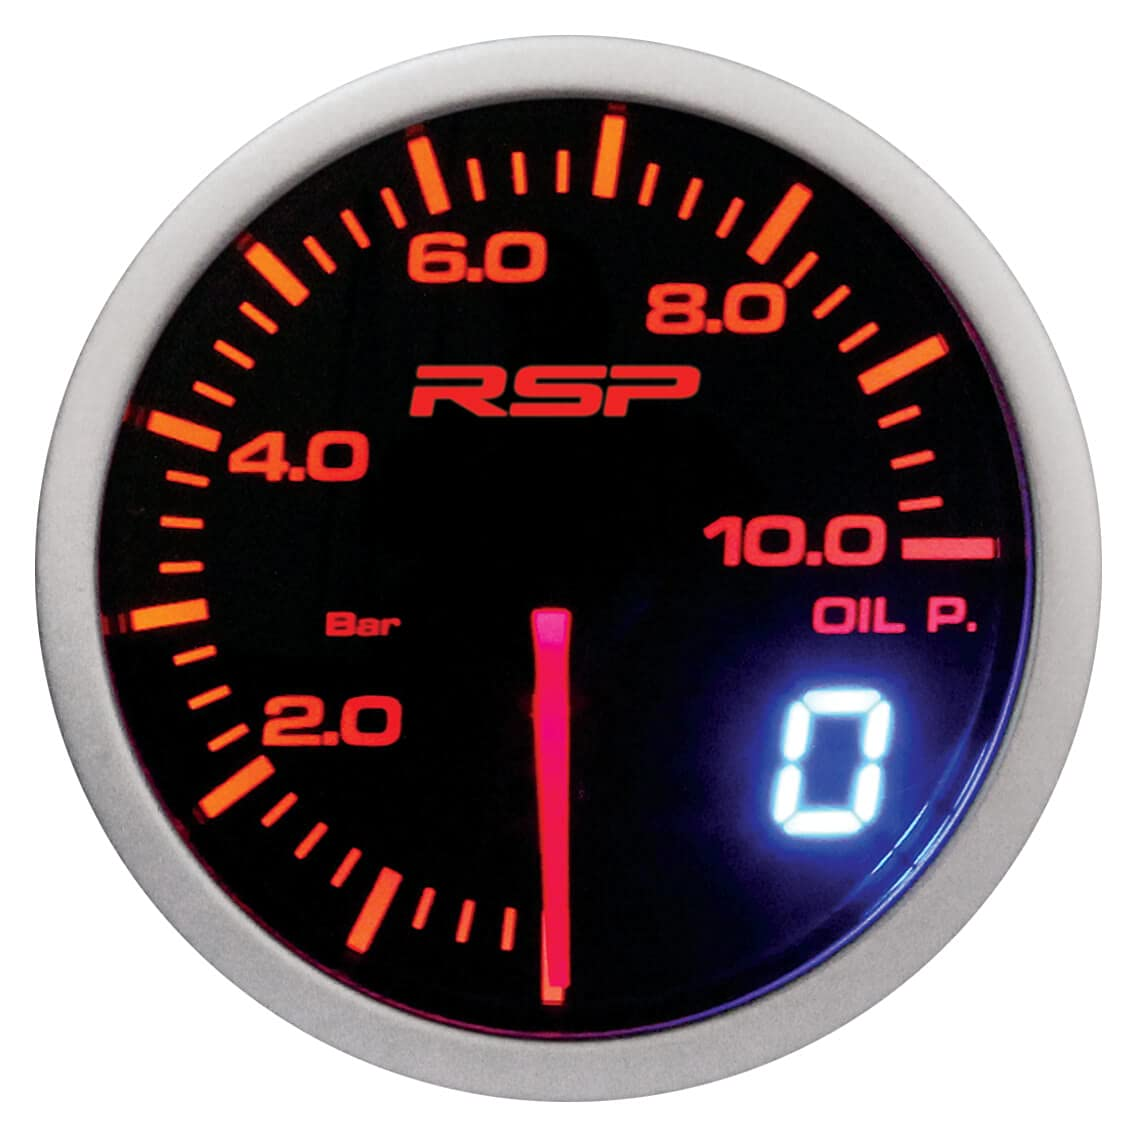 RSP Courier shipping free GLED524 Electric Gauge Pressure Rare Oil